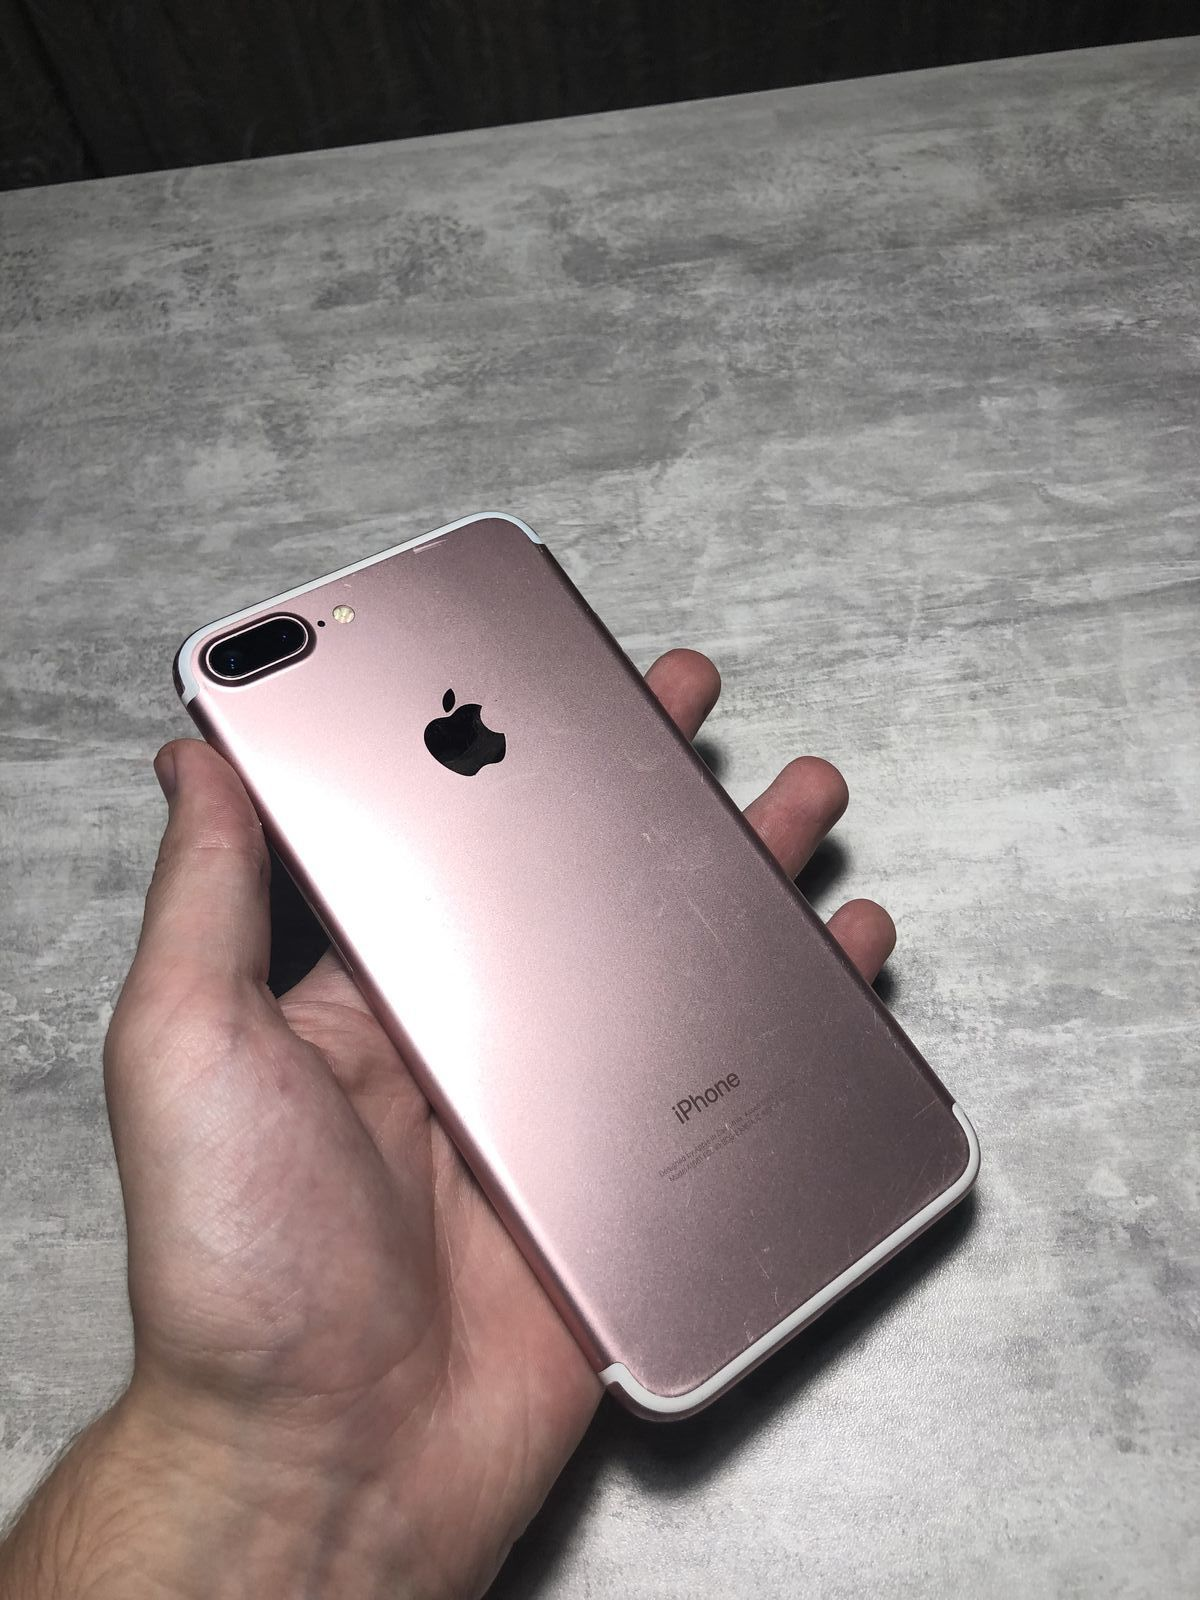 iPhone 7PLUS 128Gb Rose Neverlock Стан 8/10